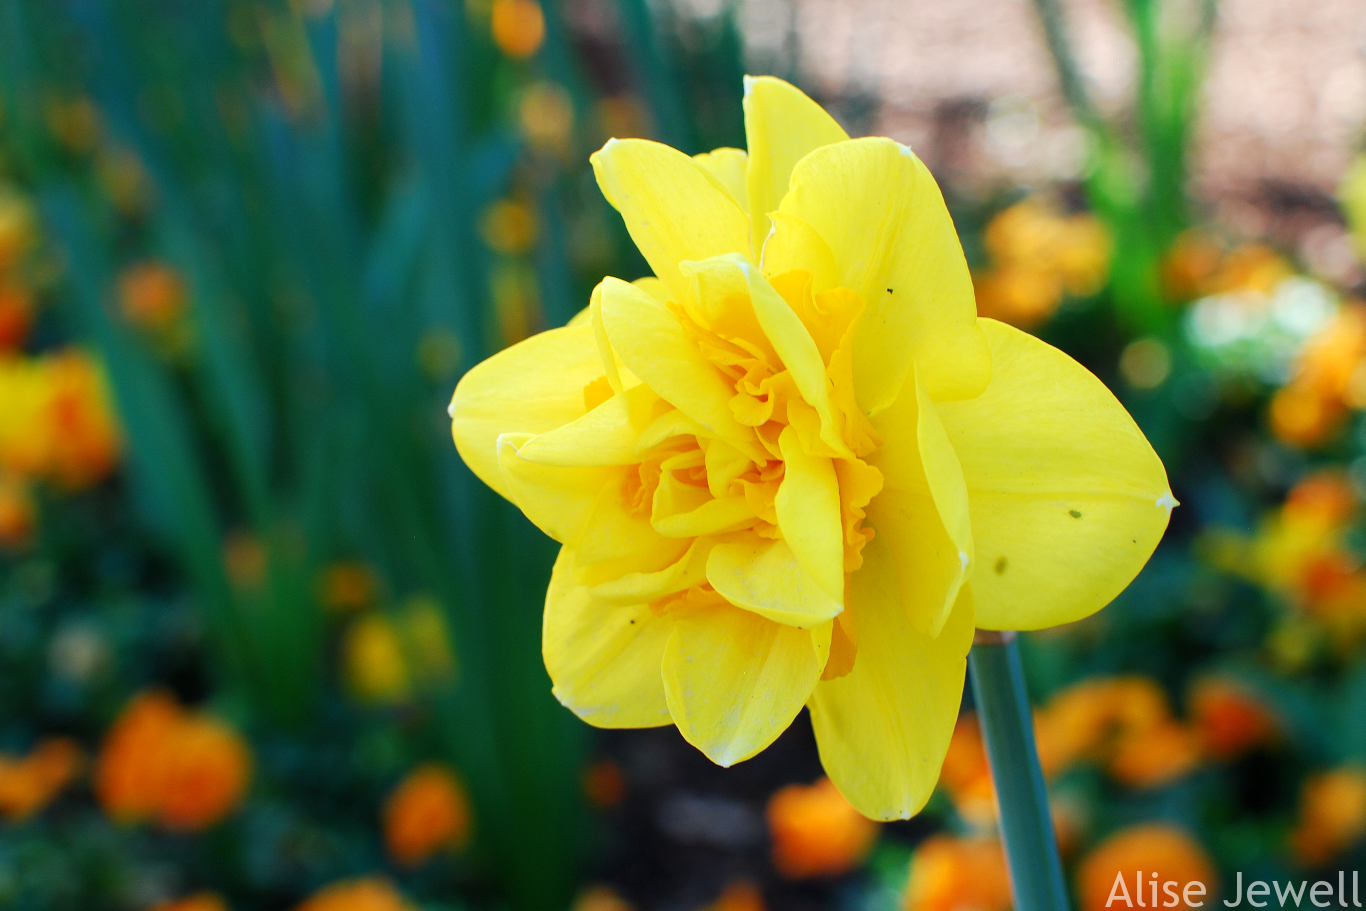 Fancy yellow daffodil